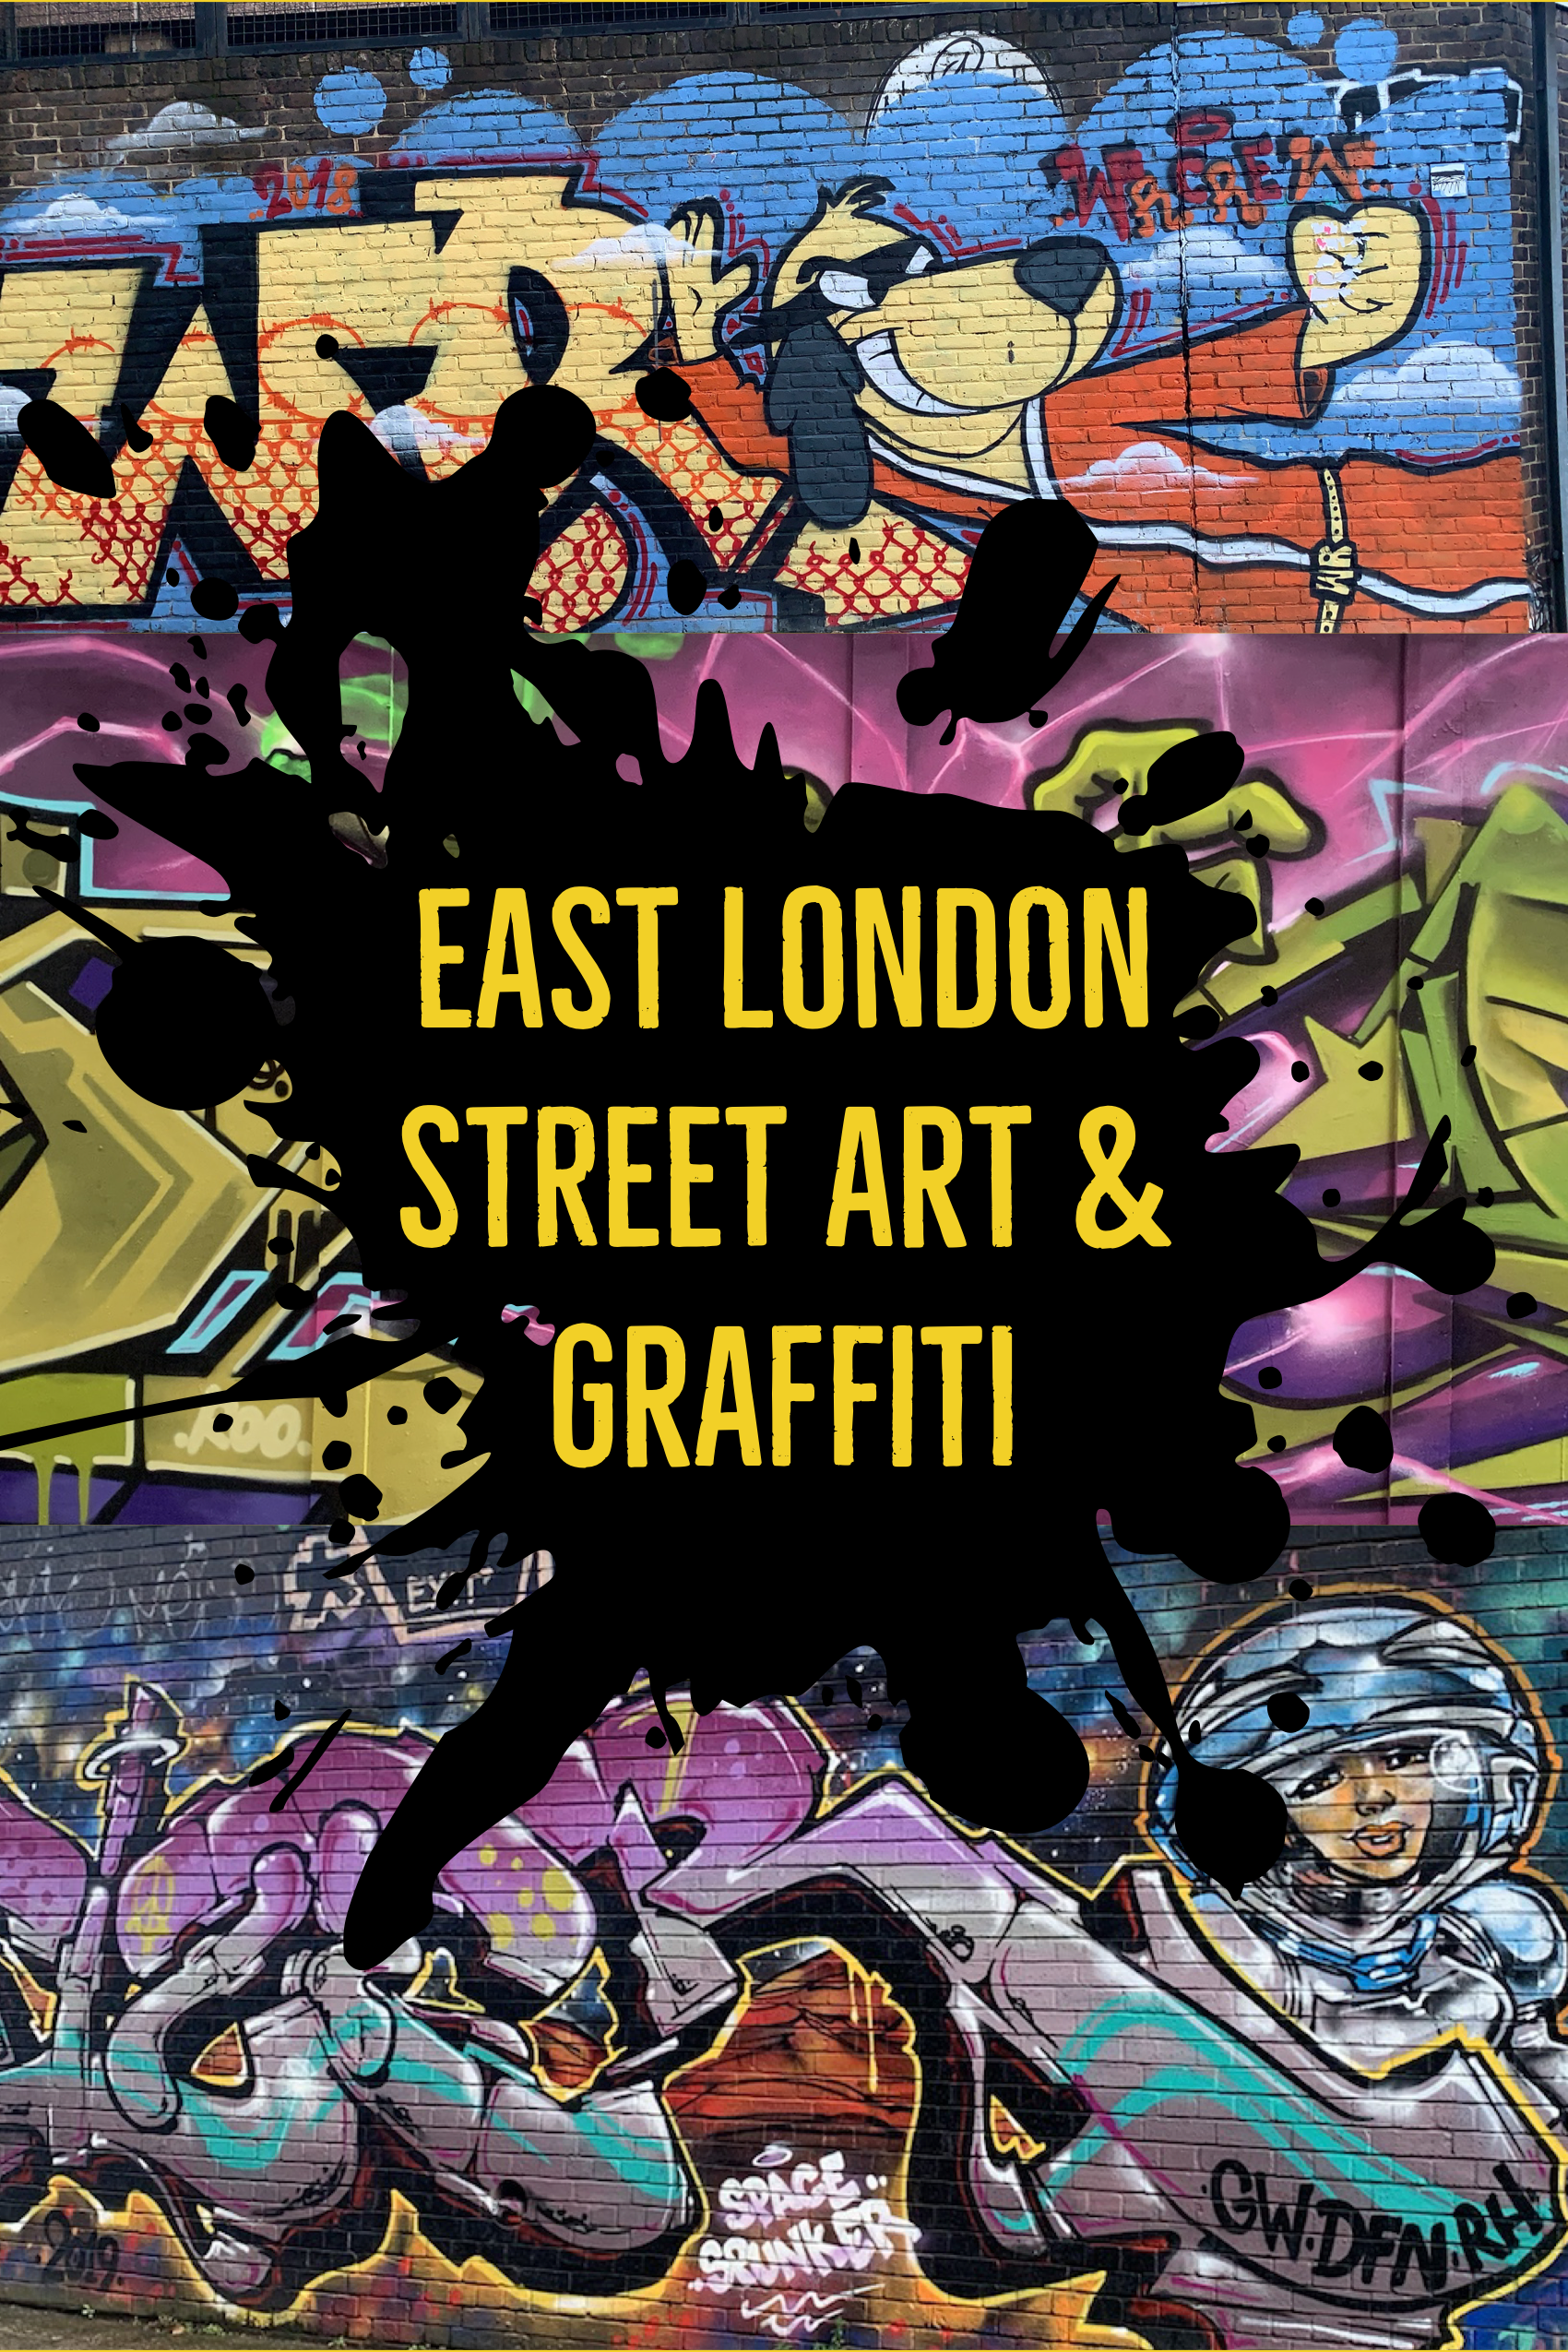 East London street art and graffiti | Most instagrammable places in London (Part 1)